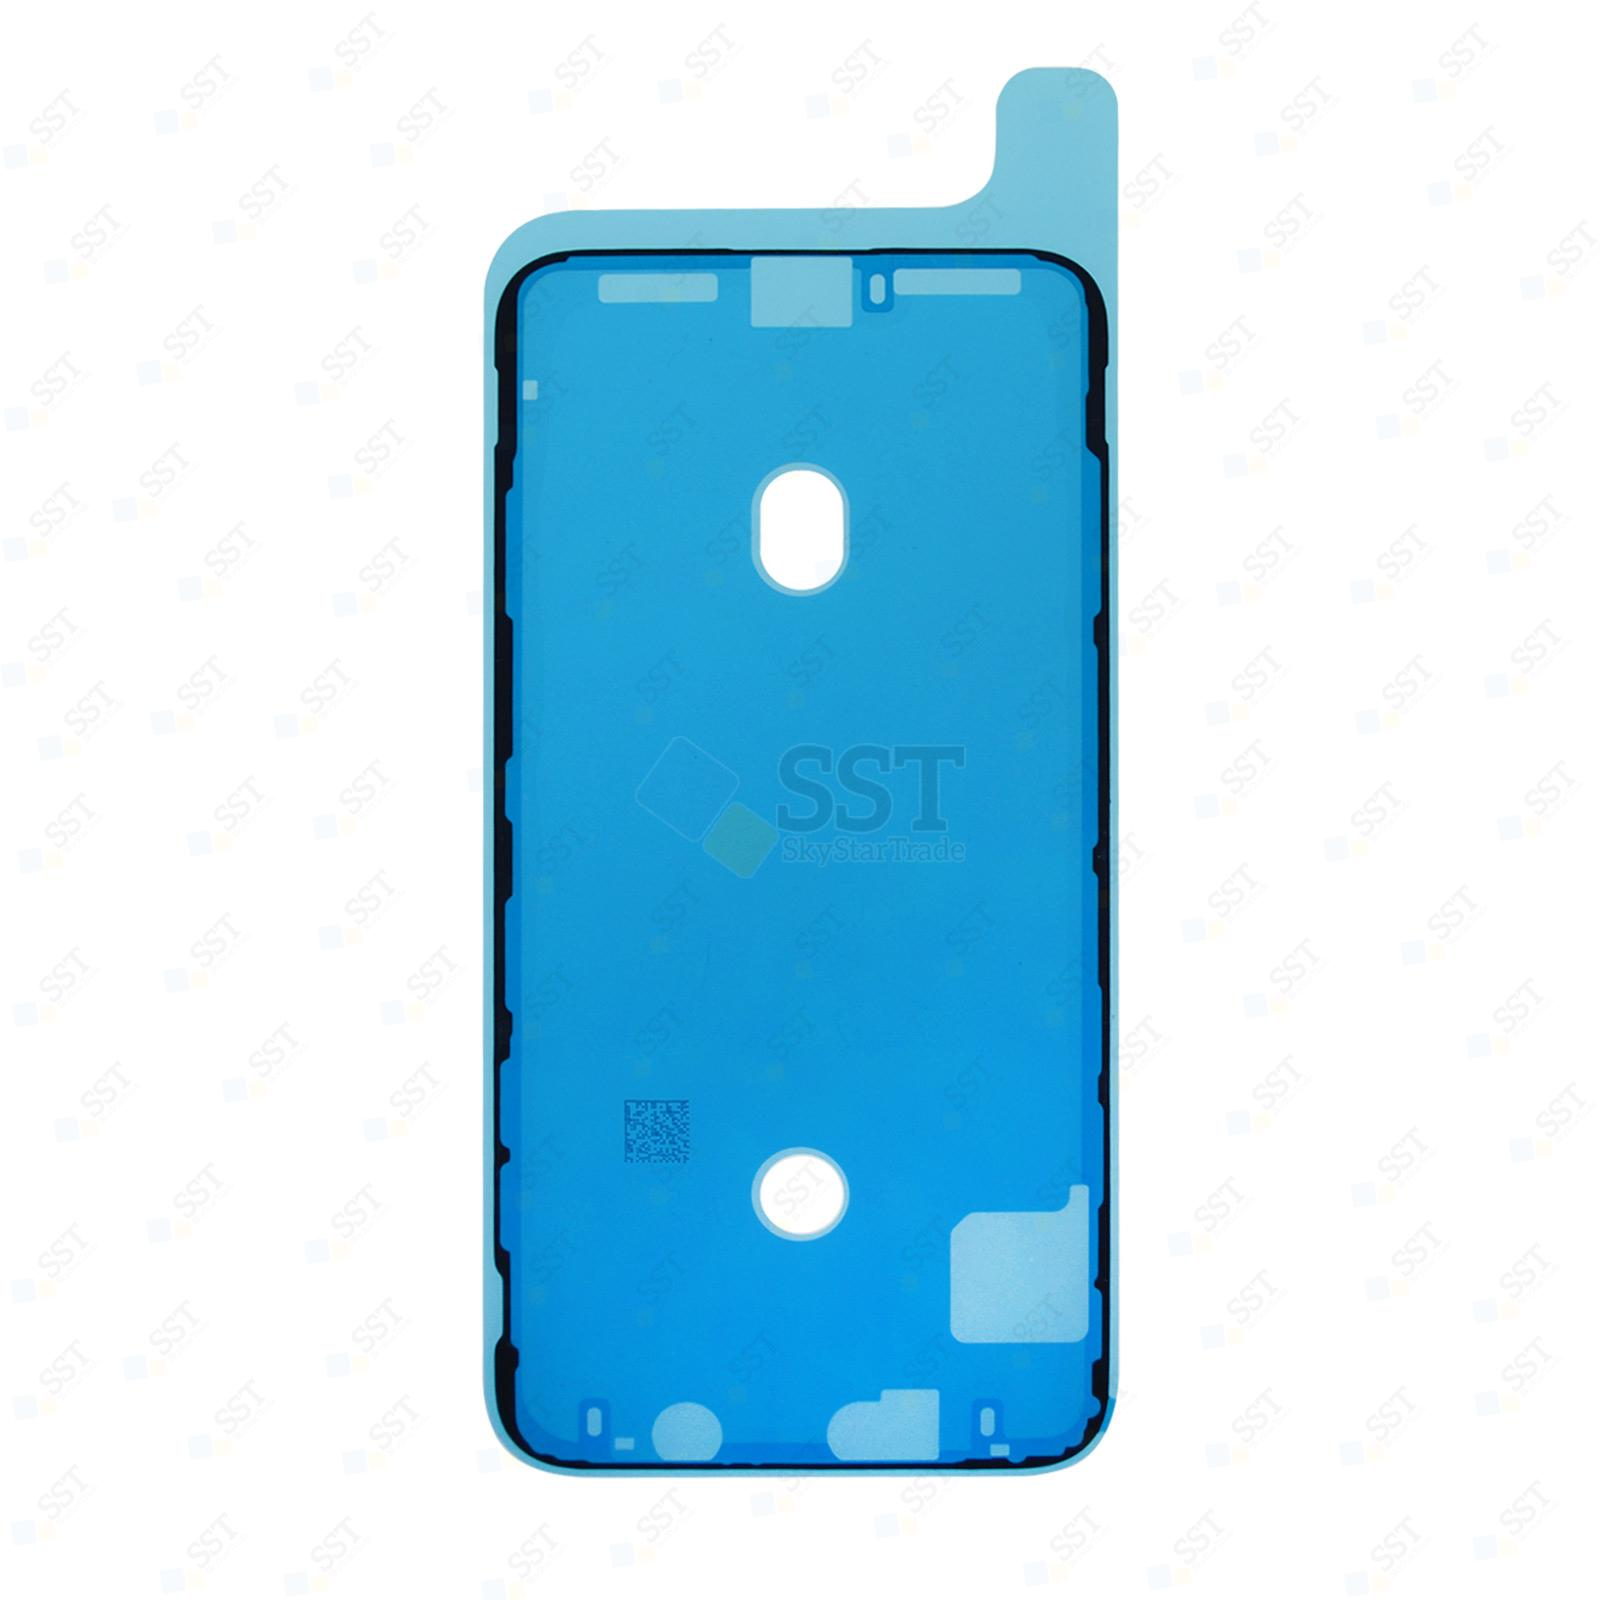 iPhone XS Max A1921 A2101 A2102 A2103 A2104 LCD Bezel Frame Pre-Cut Adhesive Sticker Tape